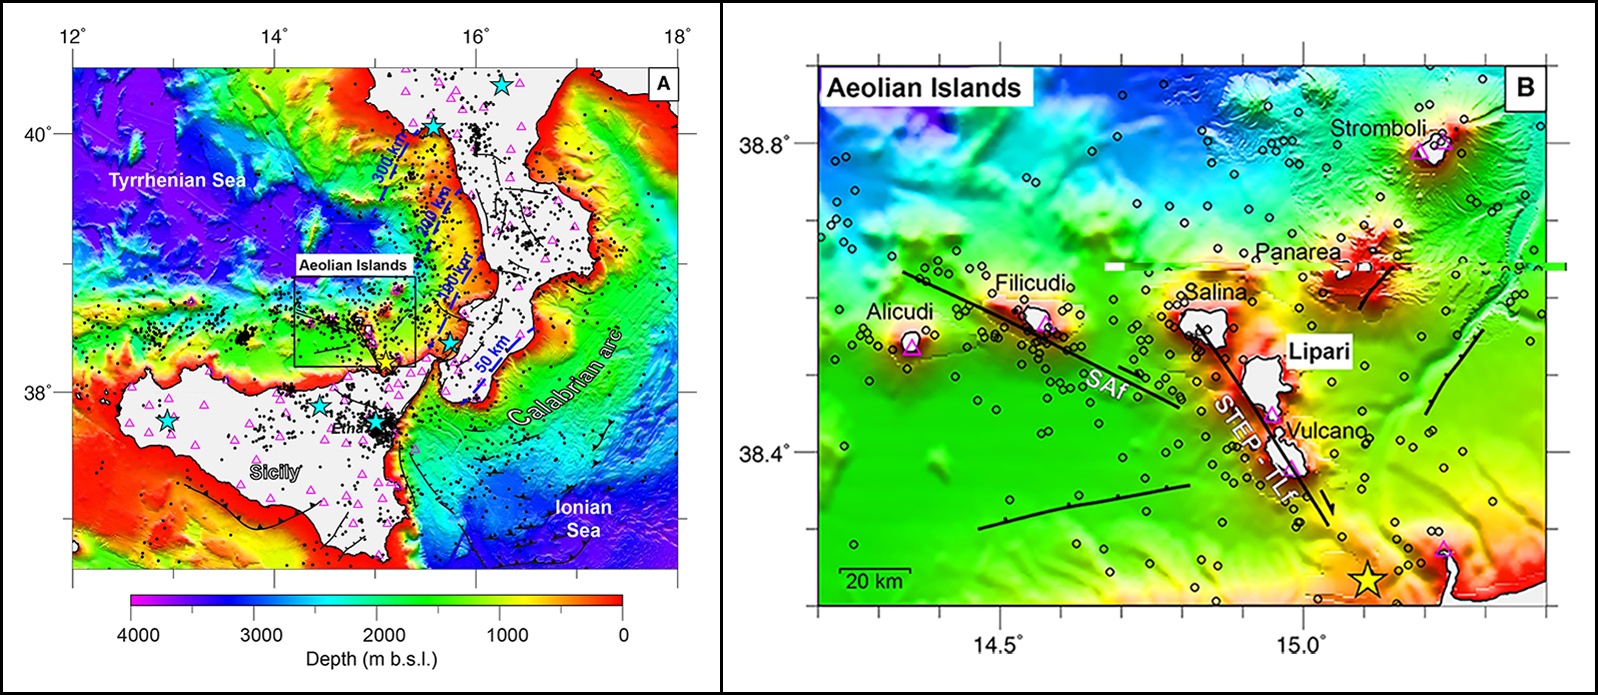 These tectonic and bathymetric maps show southern Italy and the Aeolian Islands.